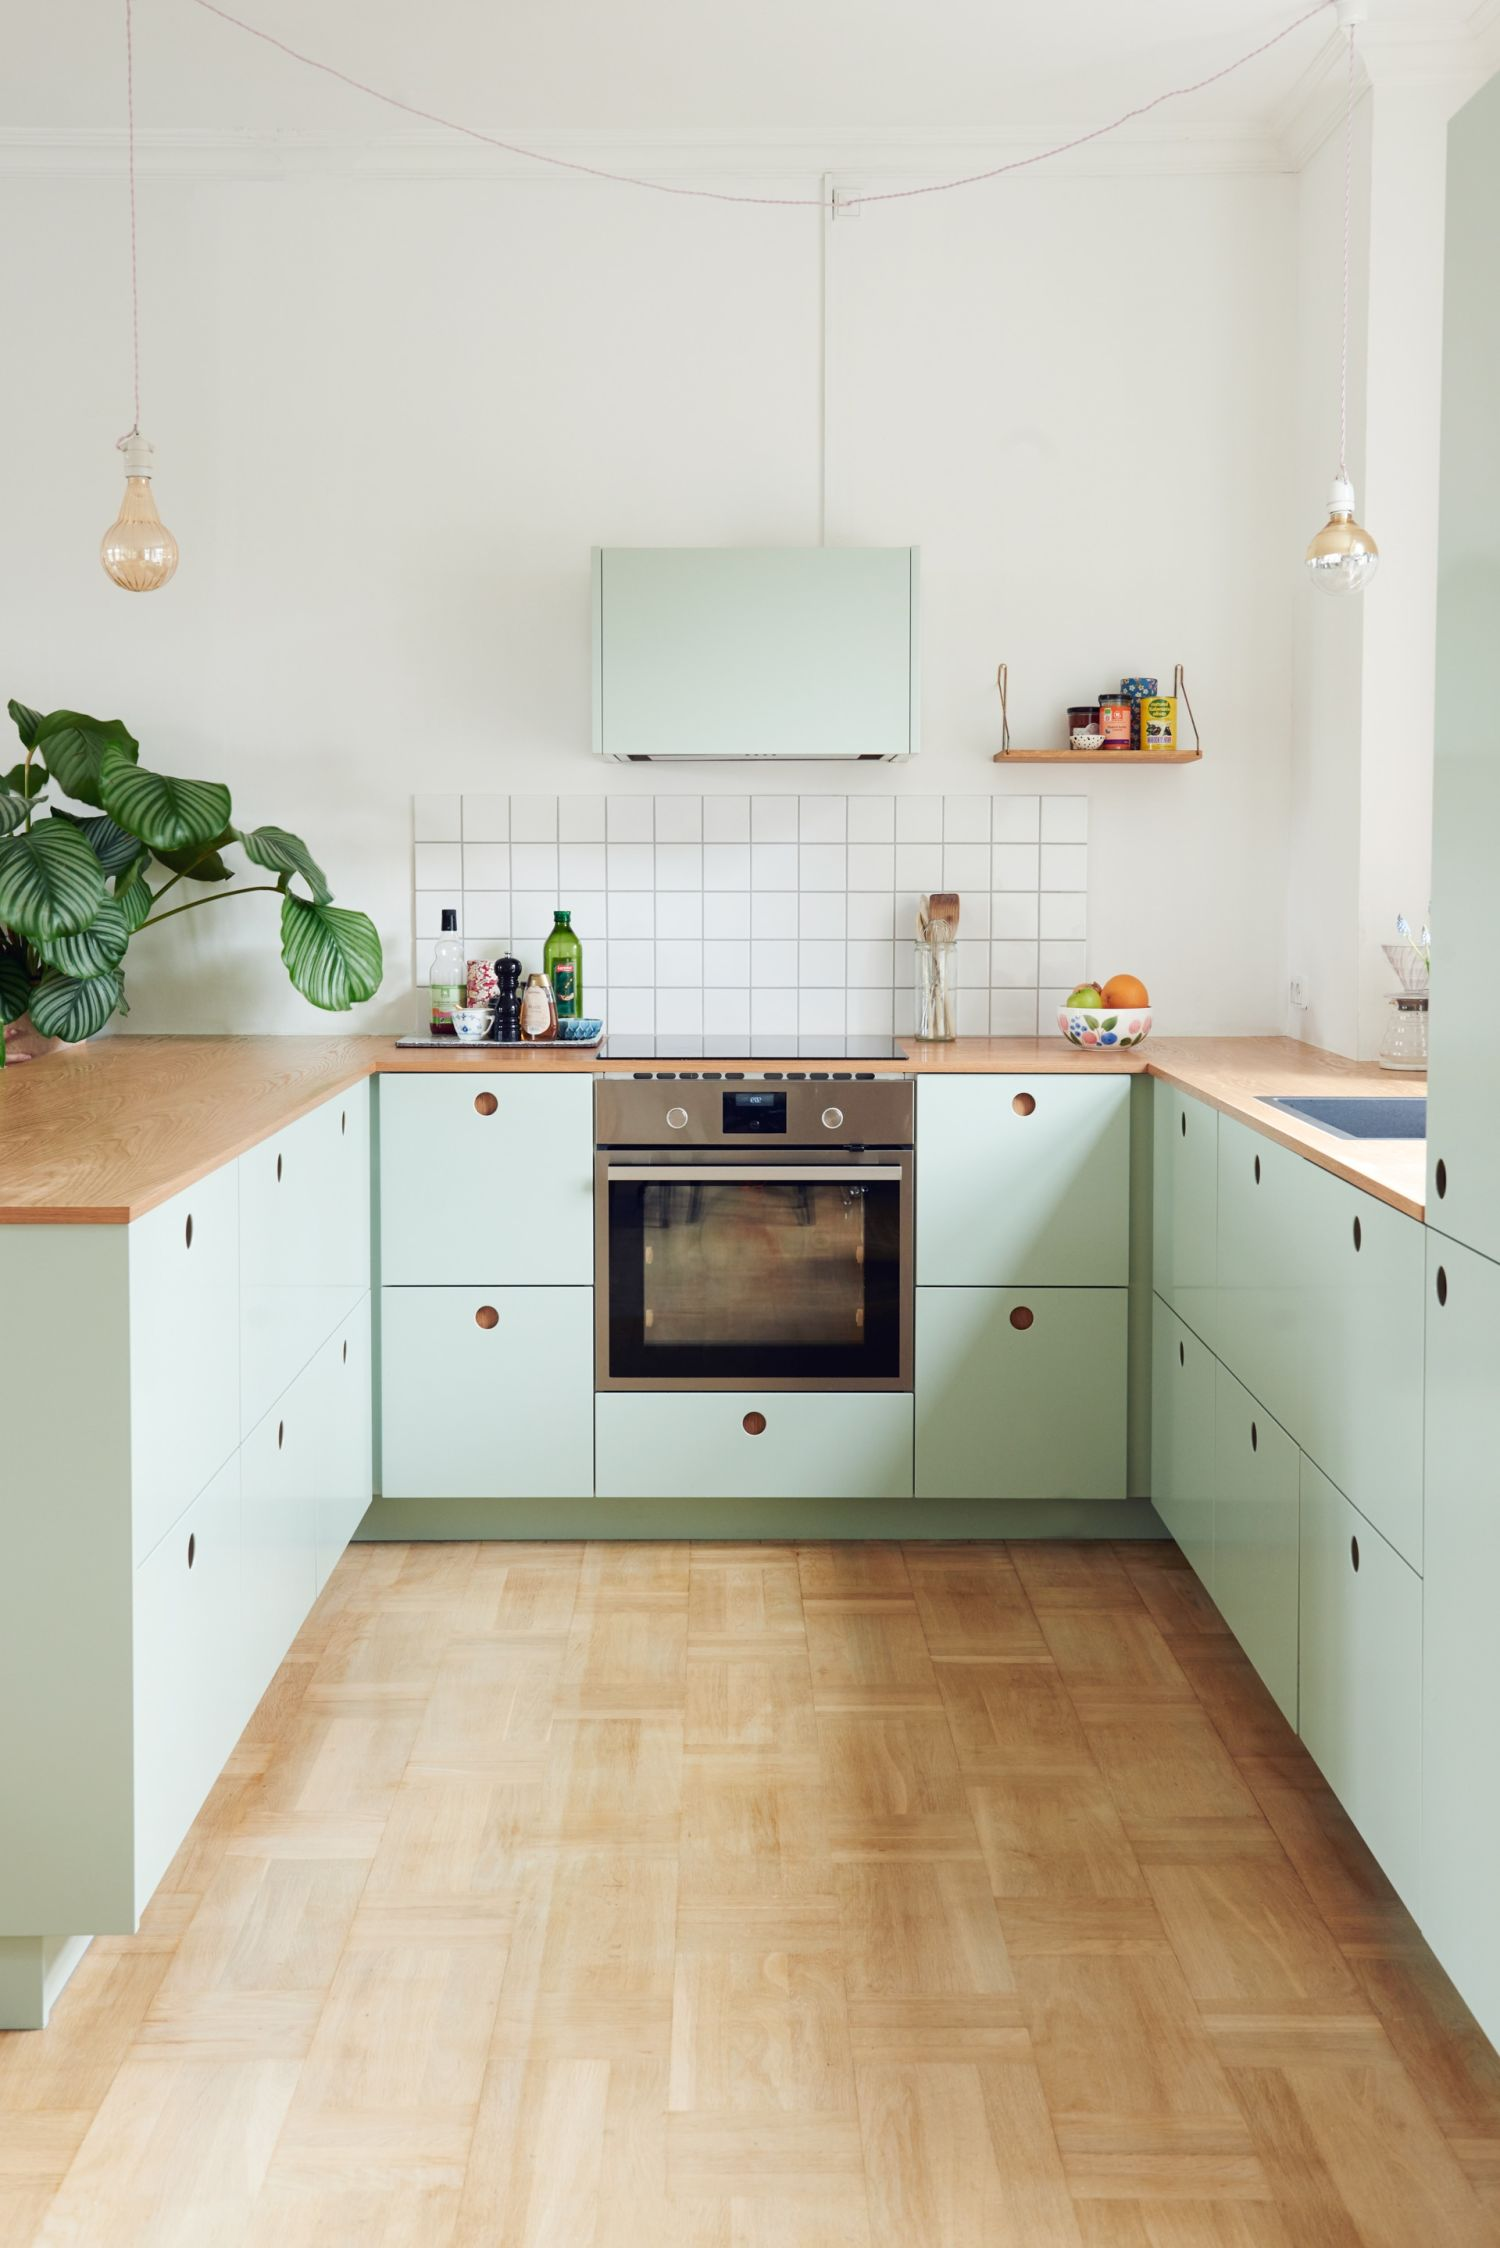 Kitchens Without Upper Cabinets Should You Go Without - Apartment